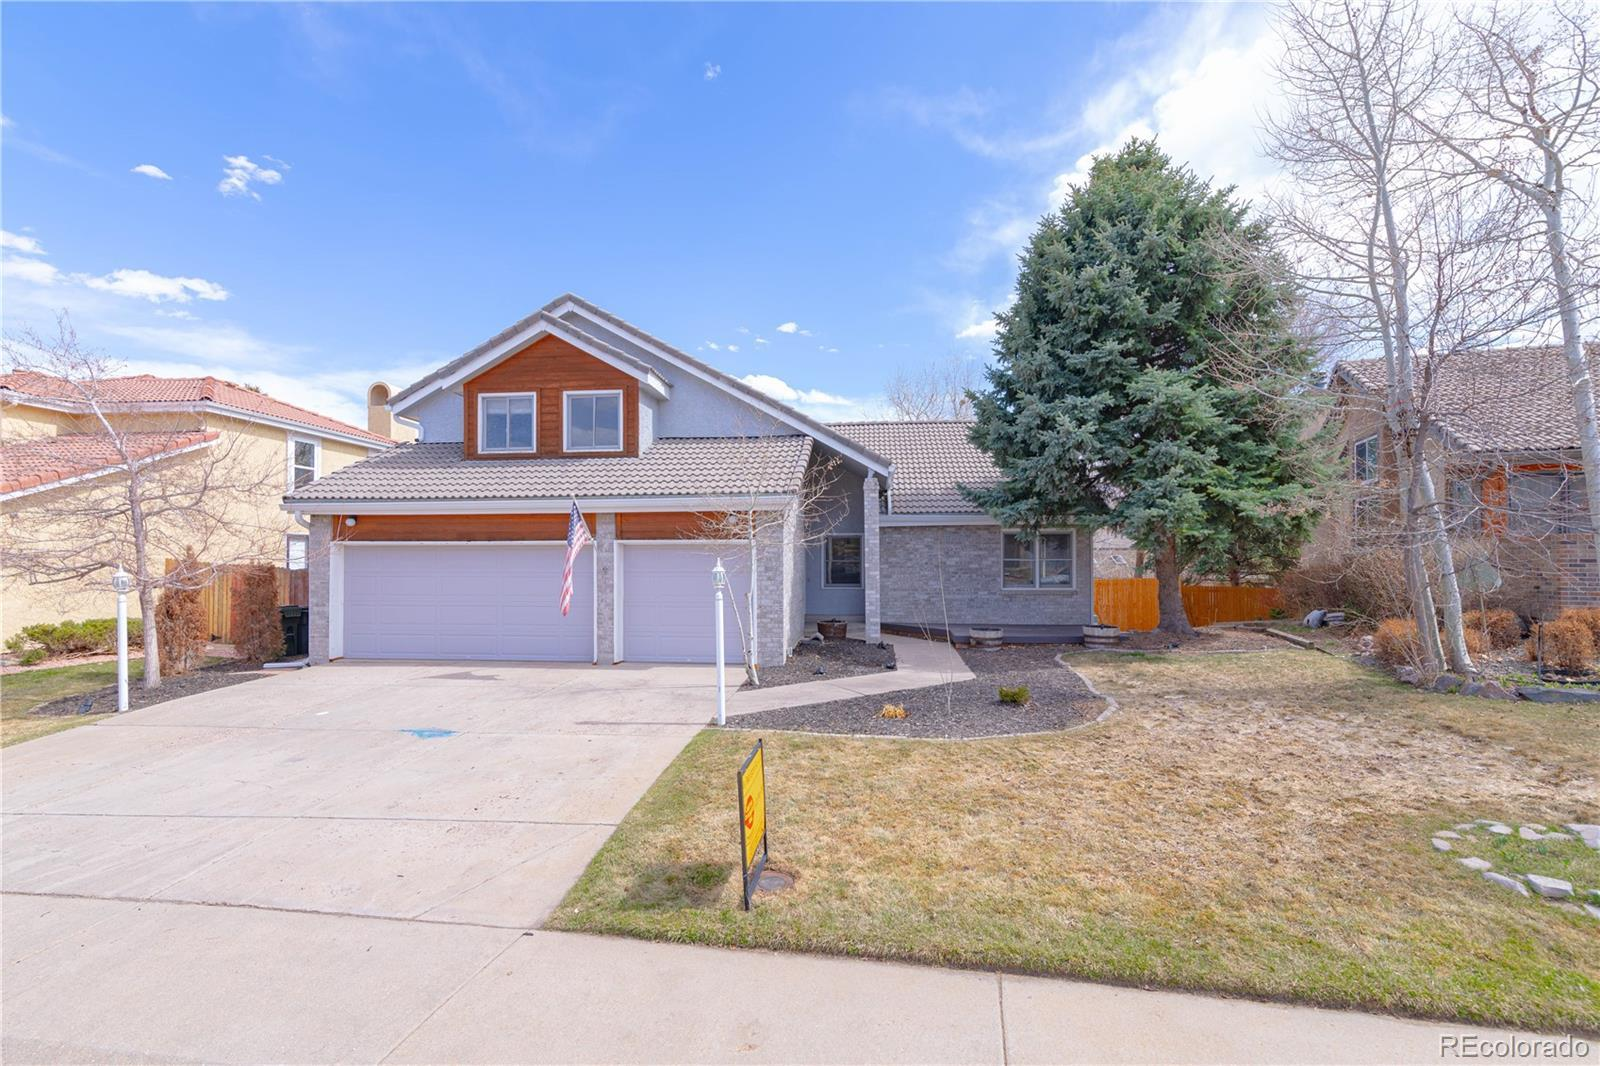 7948 Eagle Feather Way, Lone Tree, CO 80124 - #: 2778017